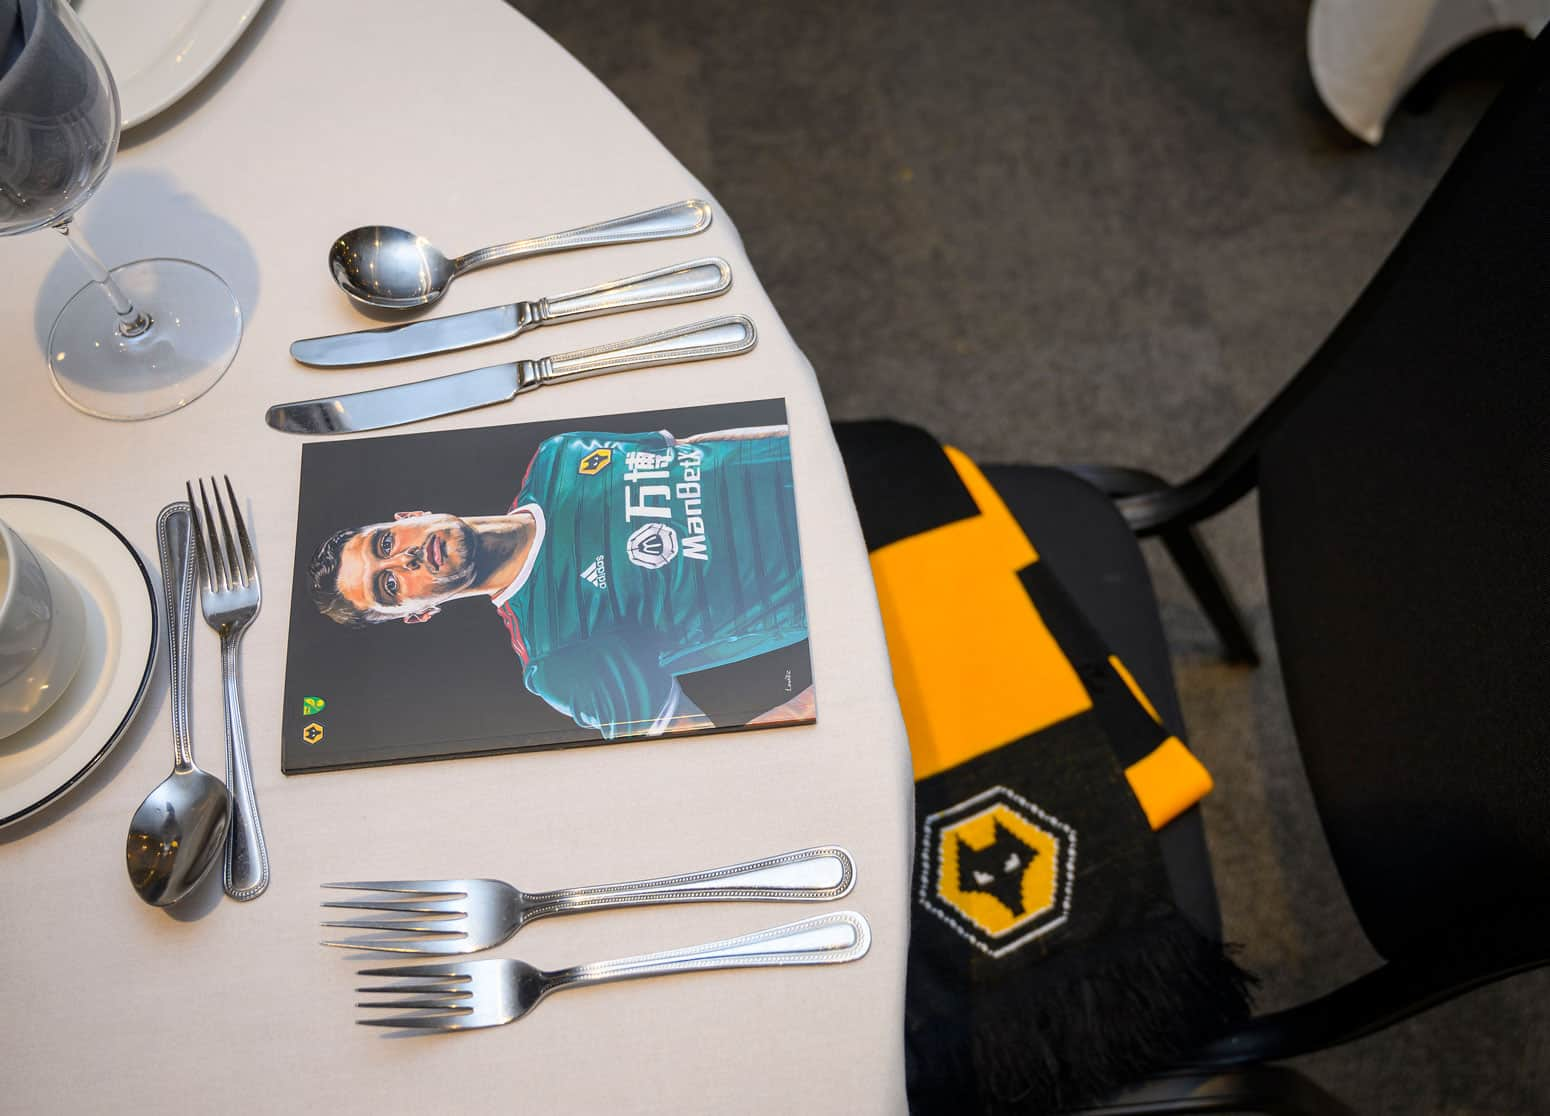 Table layout at the International Restaurant at Molineux